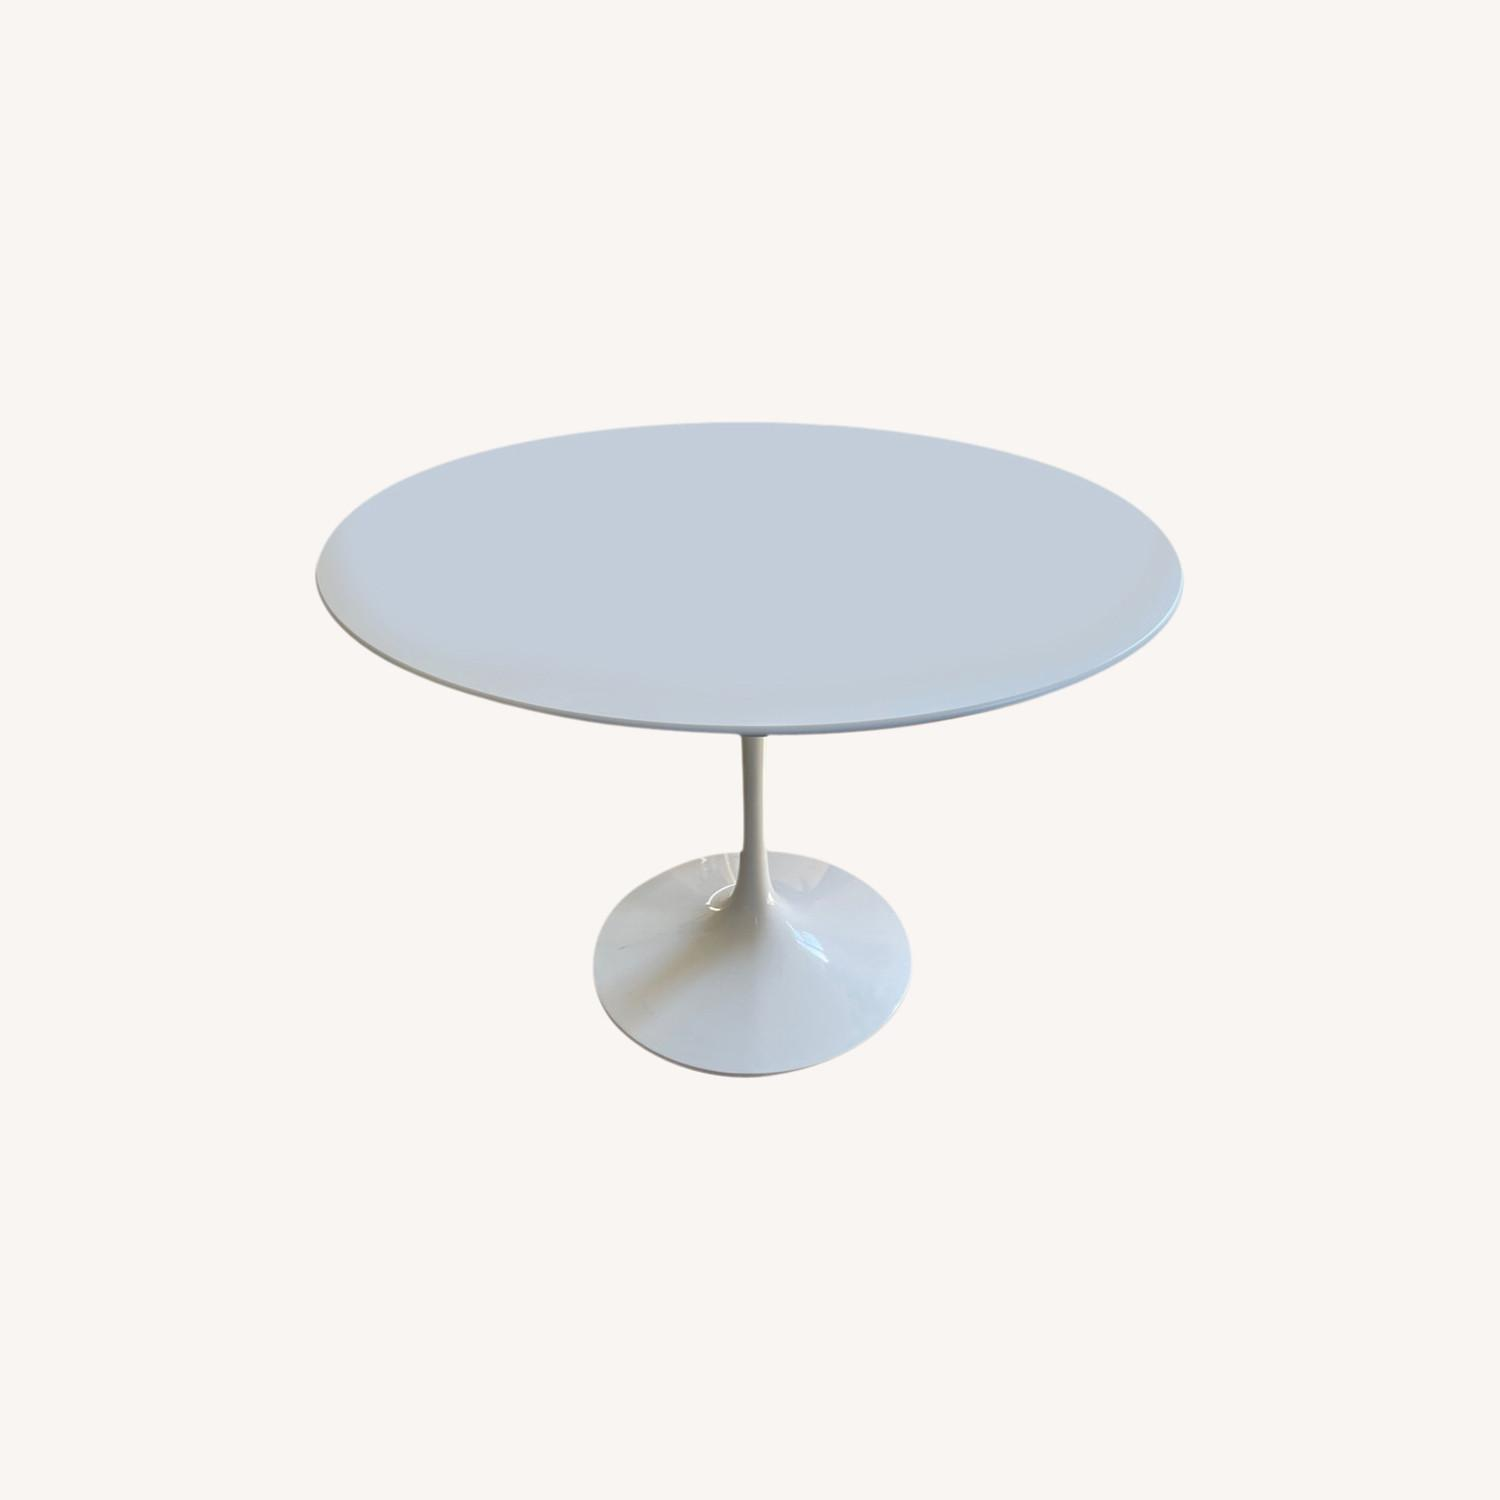 Knoll White Dining Table - image-0